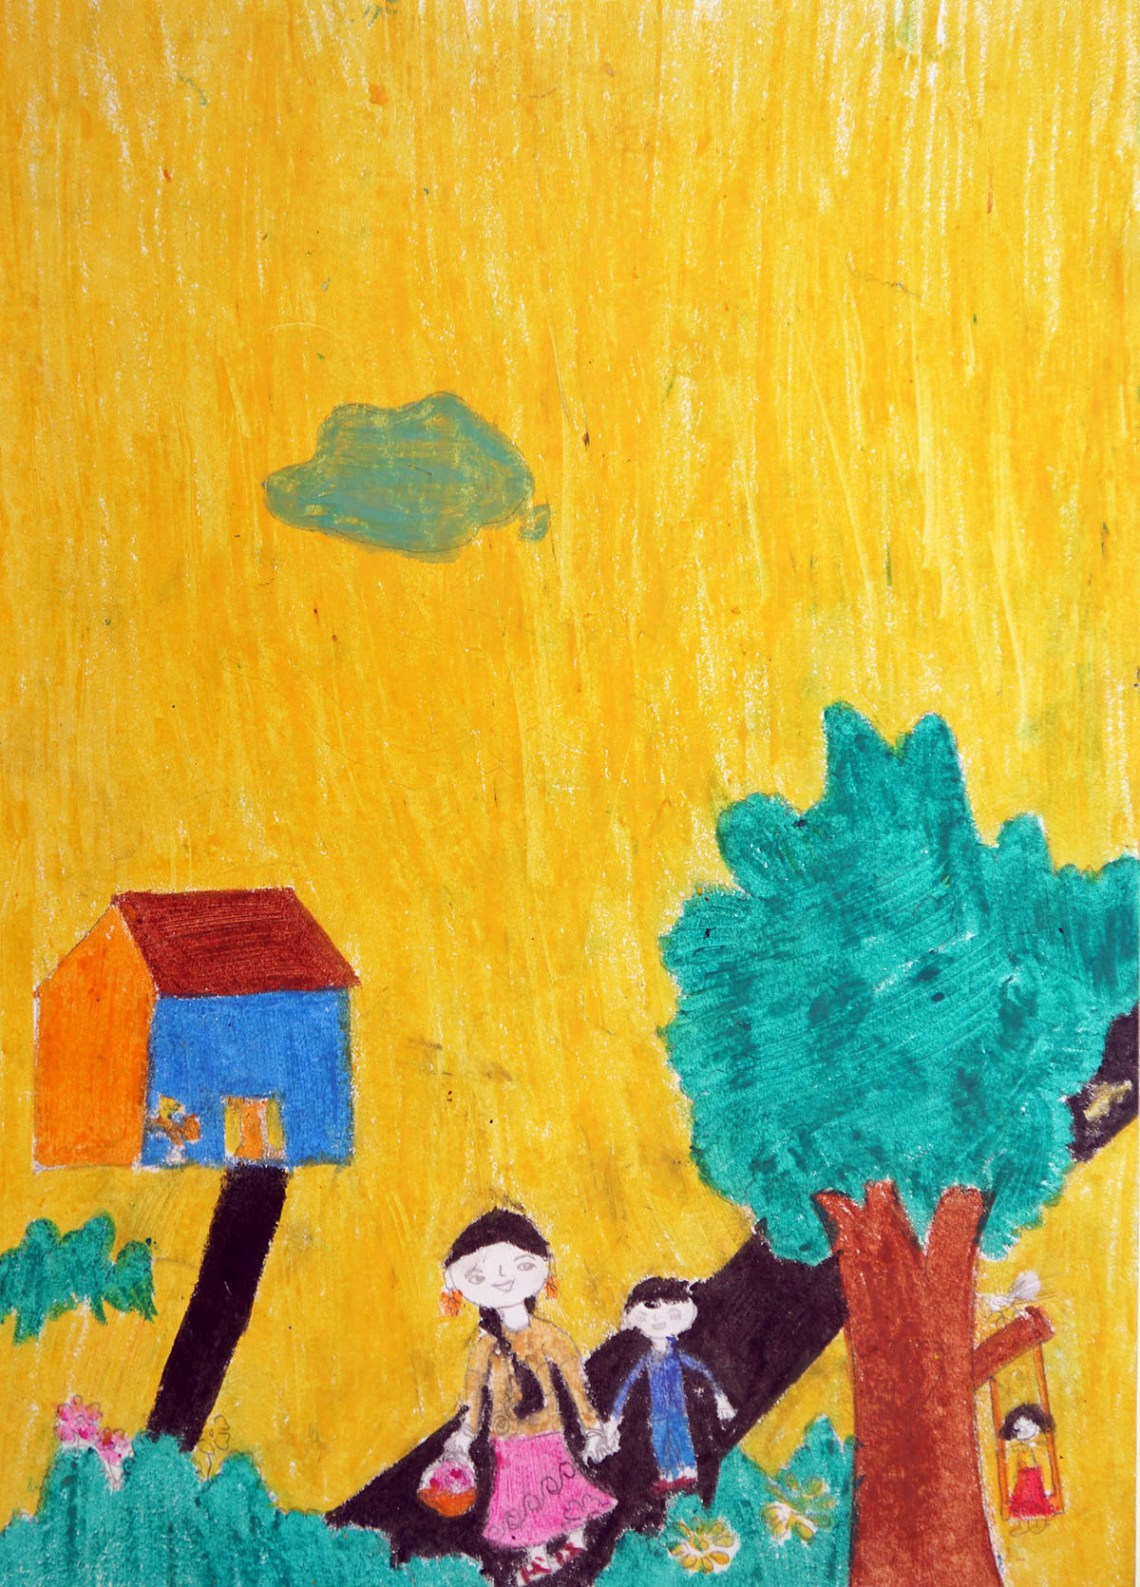 Painting by Kajal Baraf, gold medal winning artwork from Khula Aasmaan kids art competition